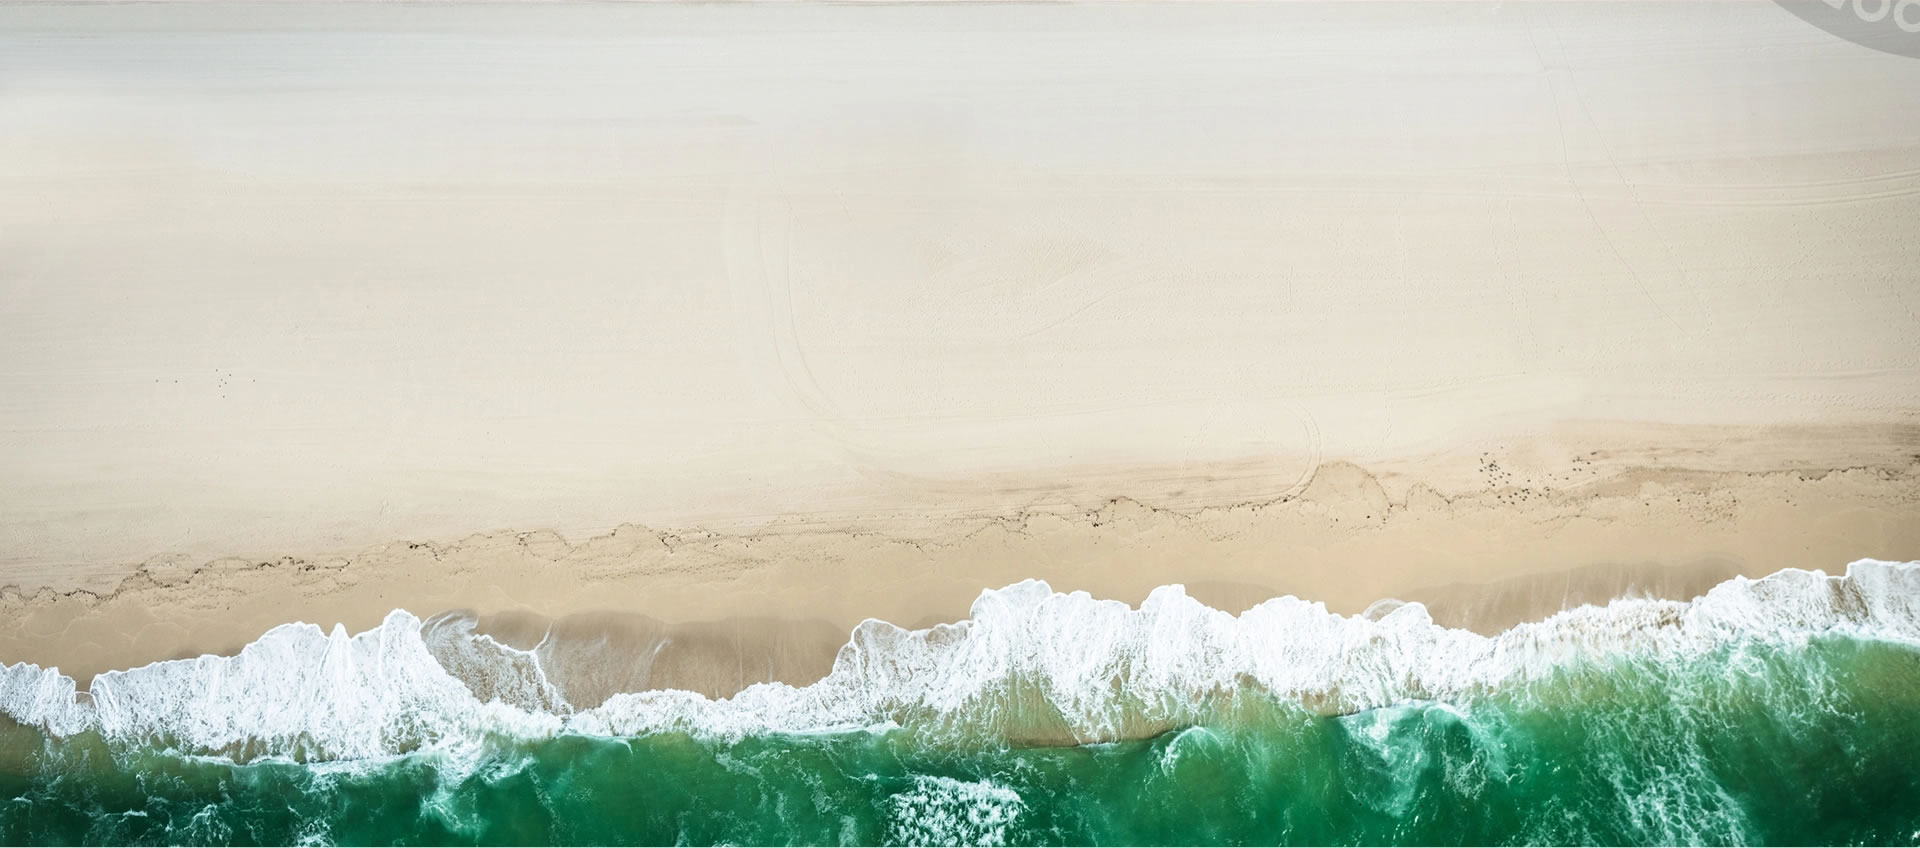 An aerial image of the ocean waves wash up on the shore of a clean, sandy beach.